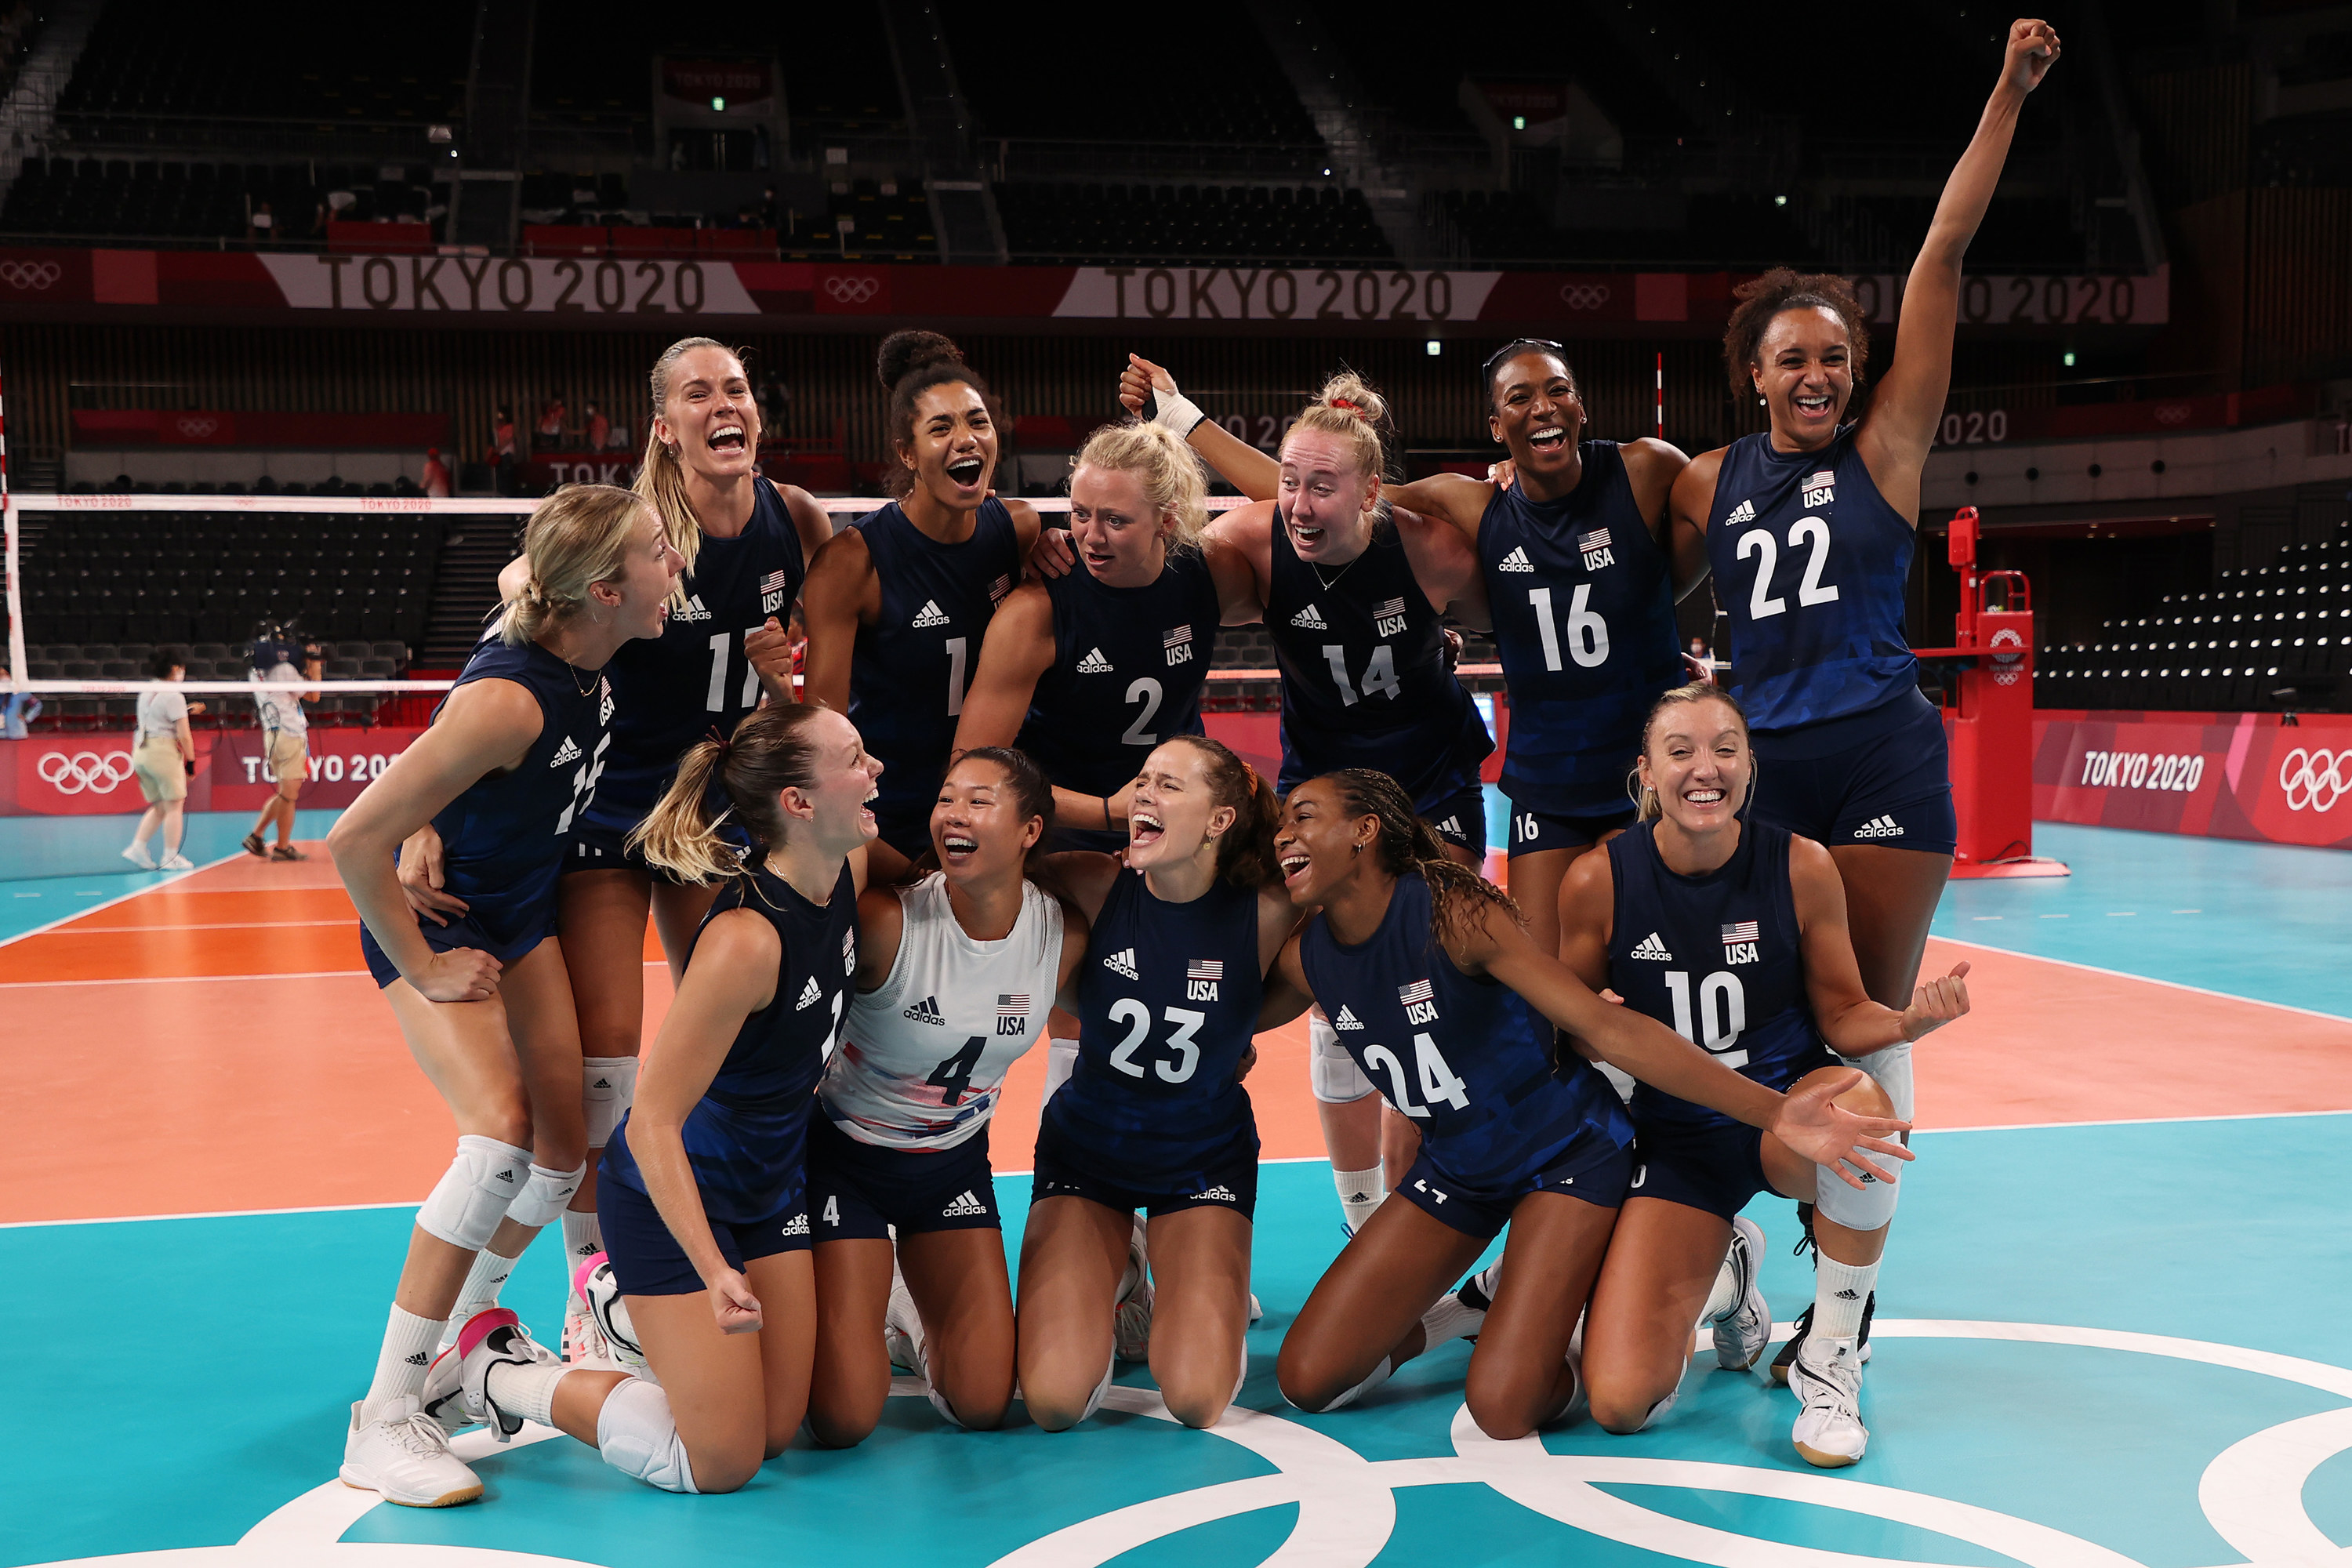 The team celebrating and posing for a picture after getting through the quarterfinals